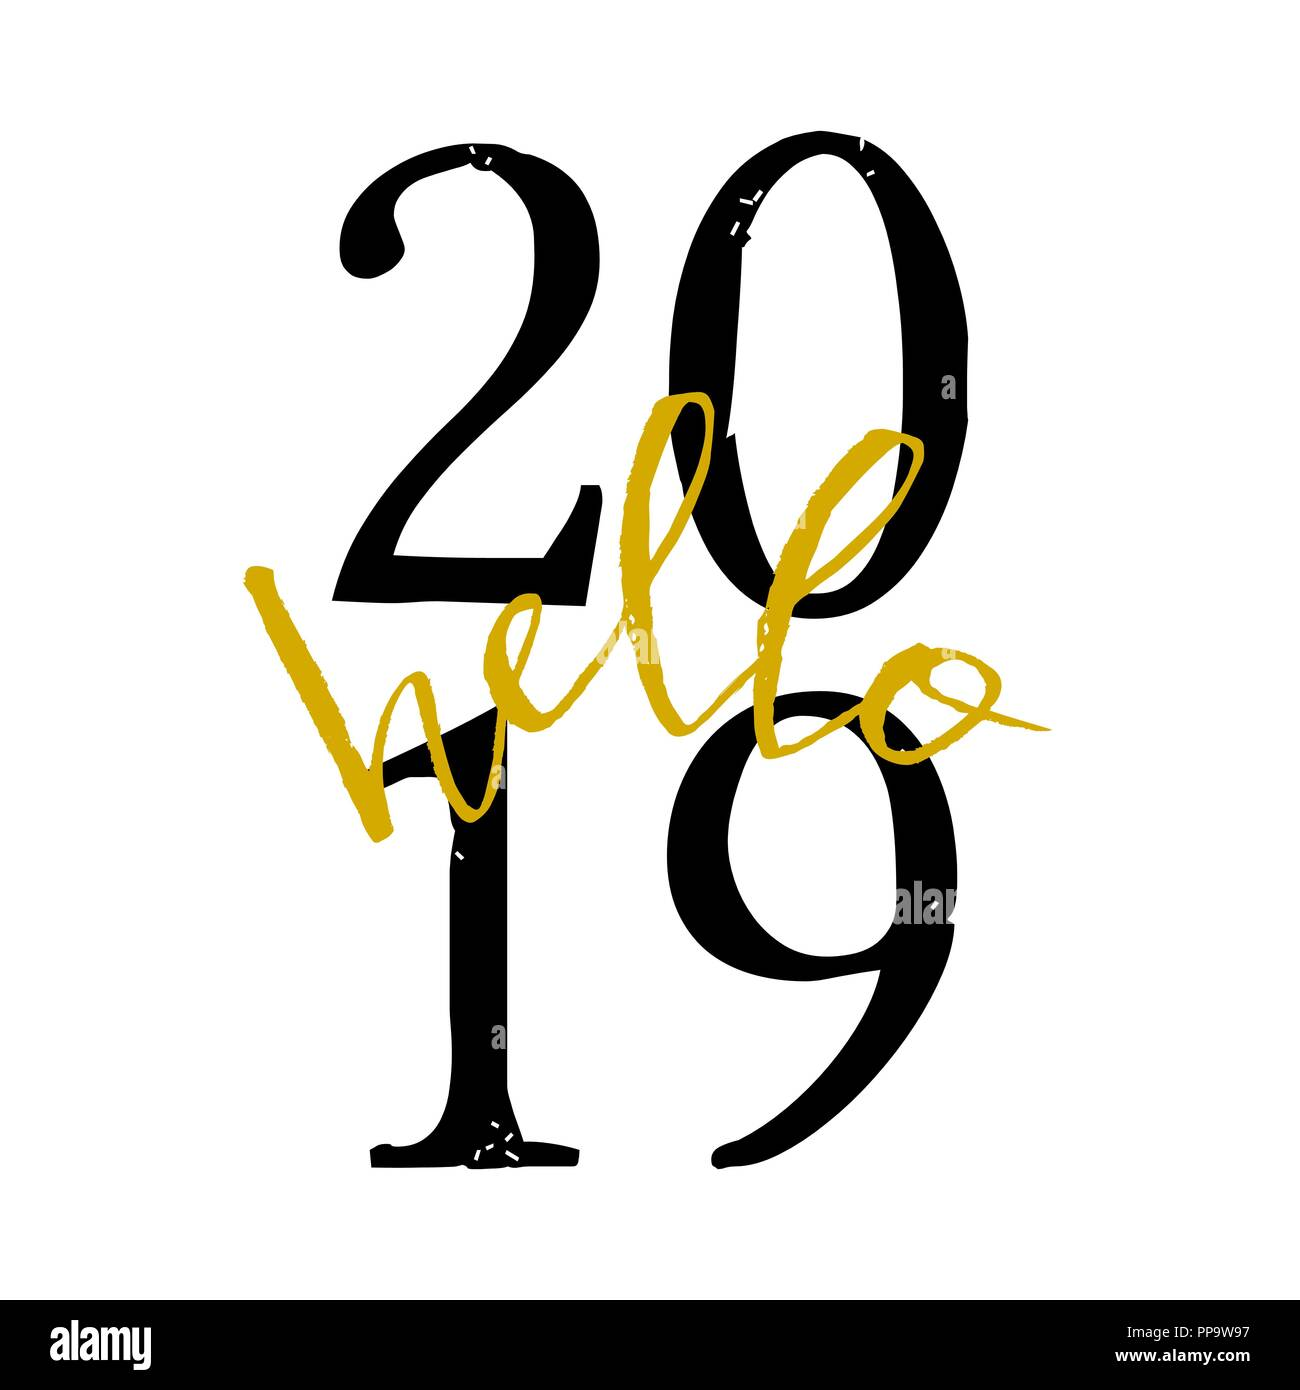 square greeting card template with typographic design for 2019 in